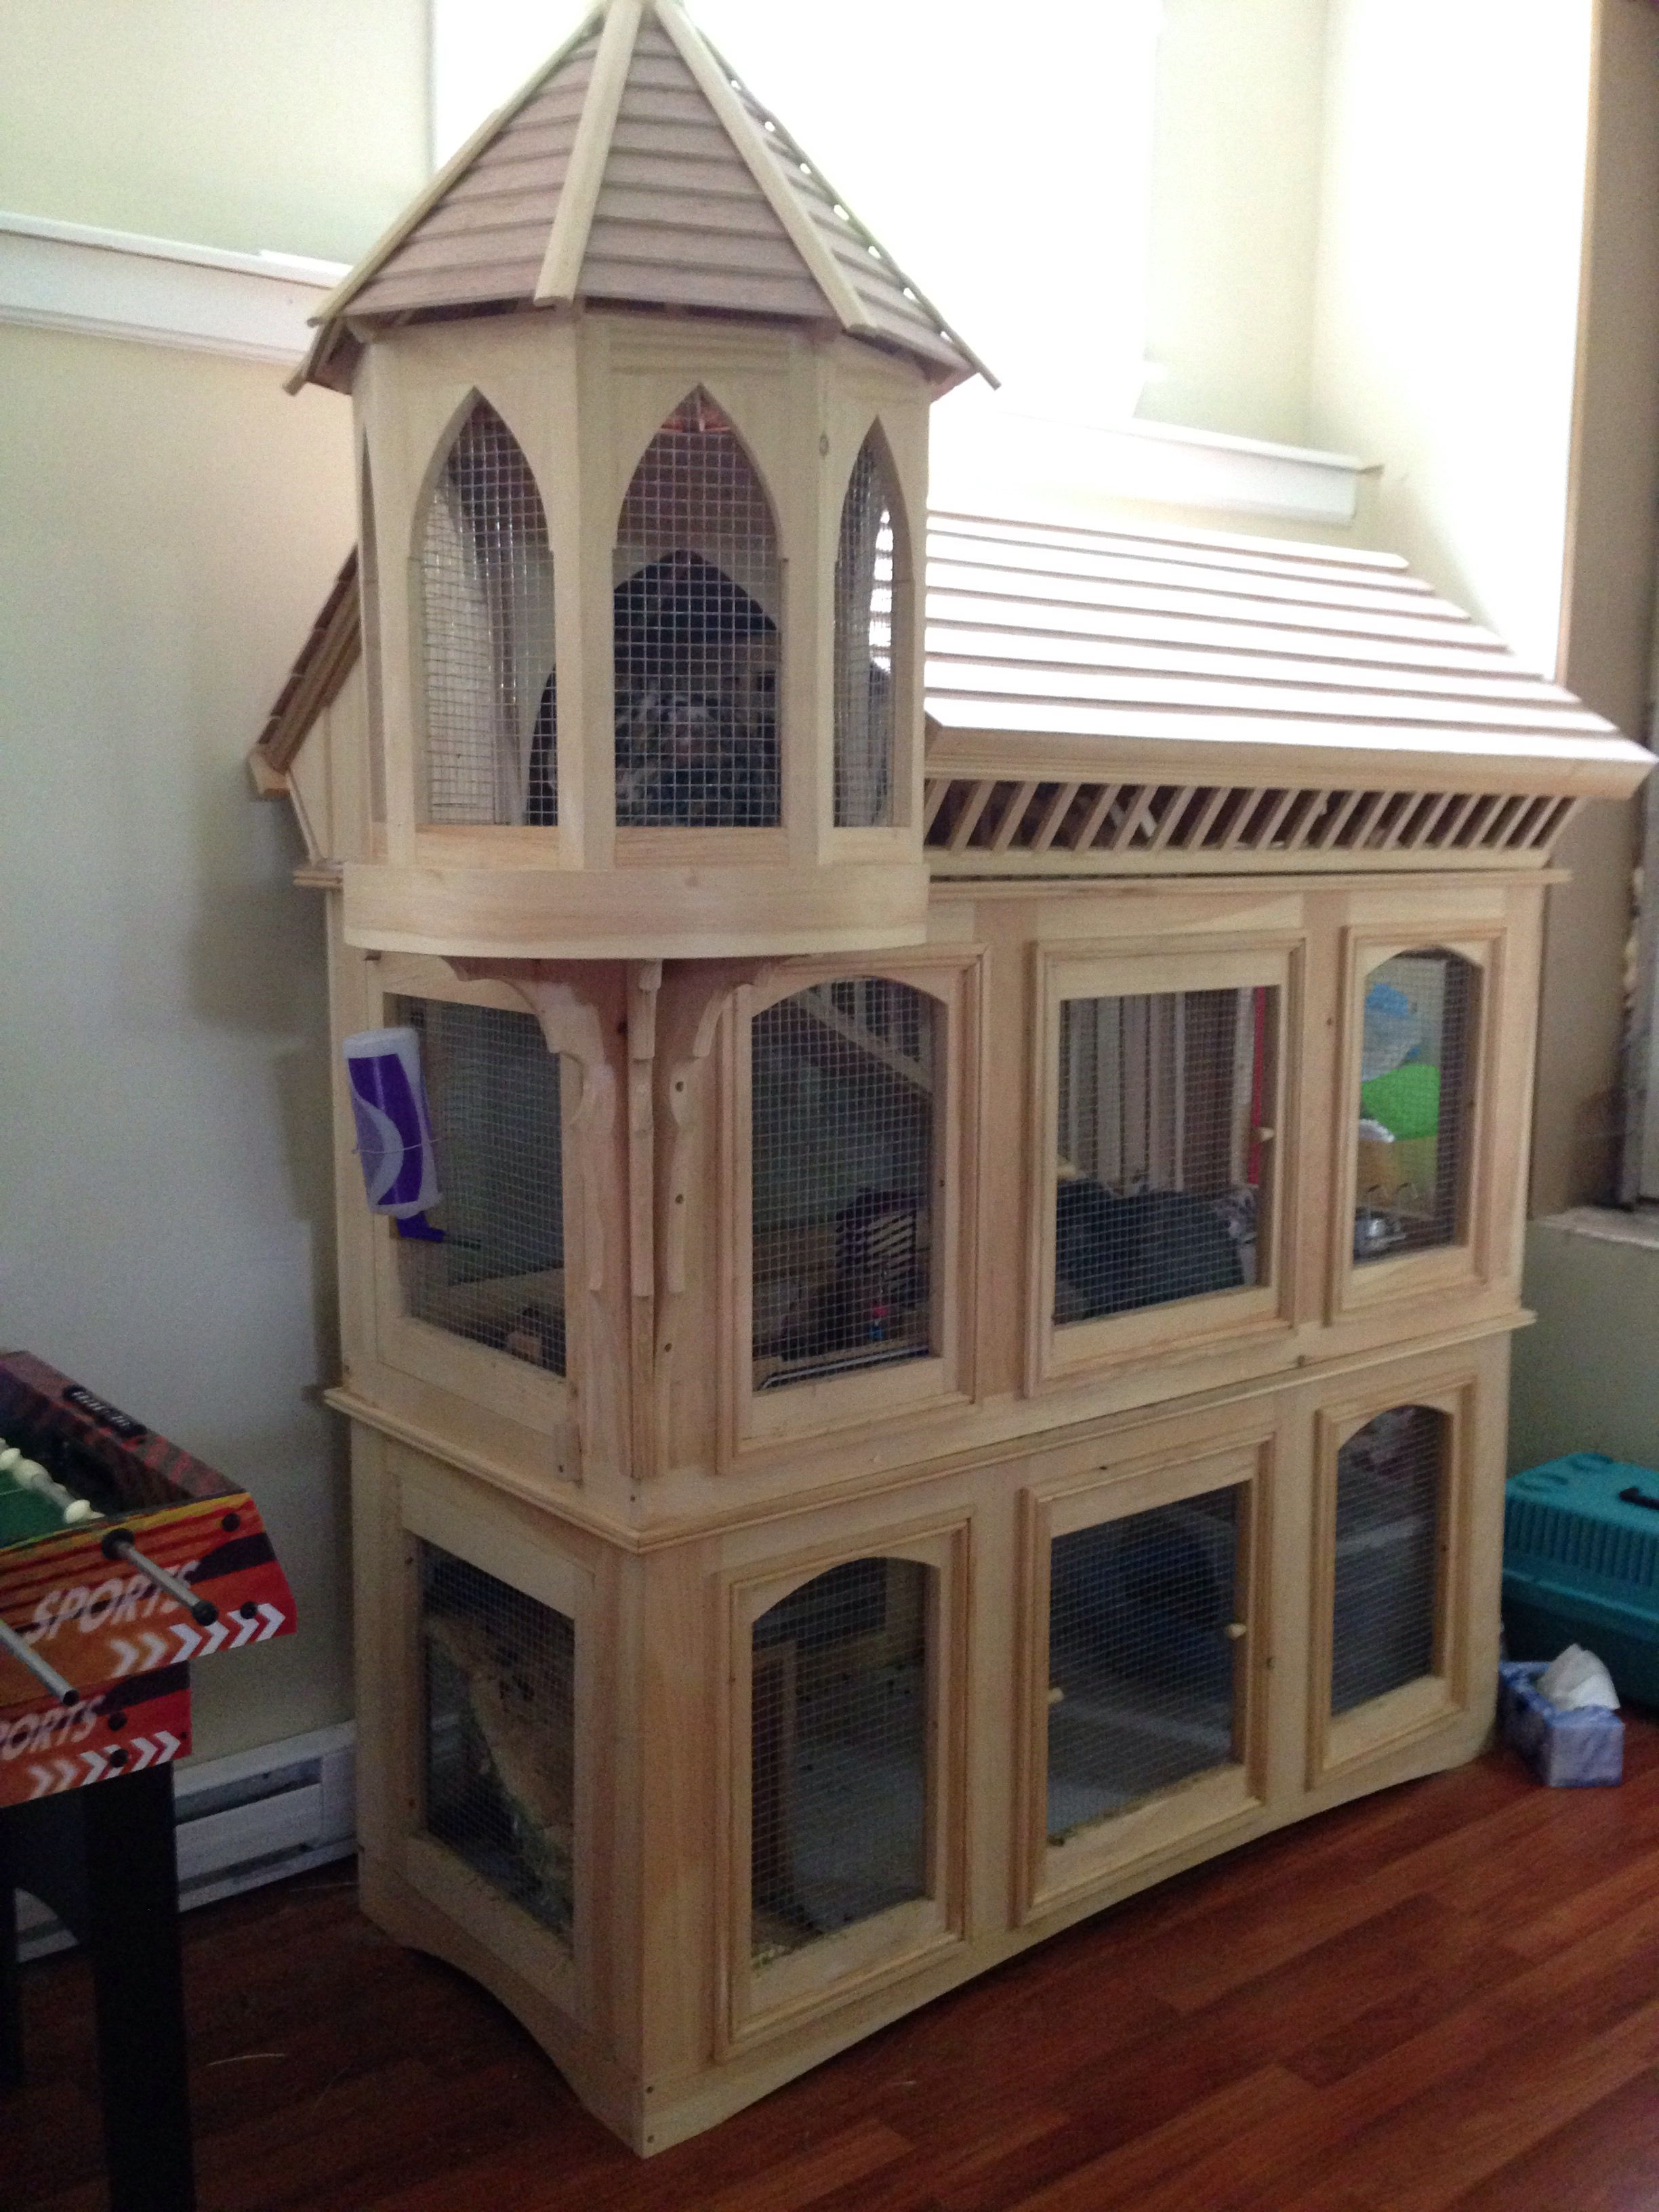 7ft High Bunny Palace That My Dad Made Pig House Bunny House